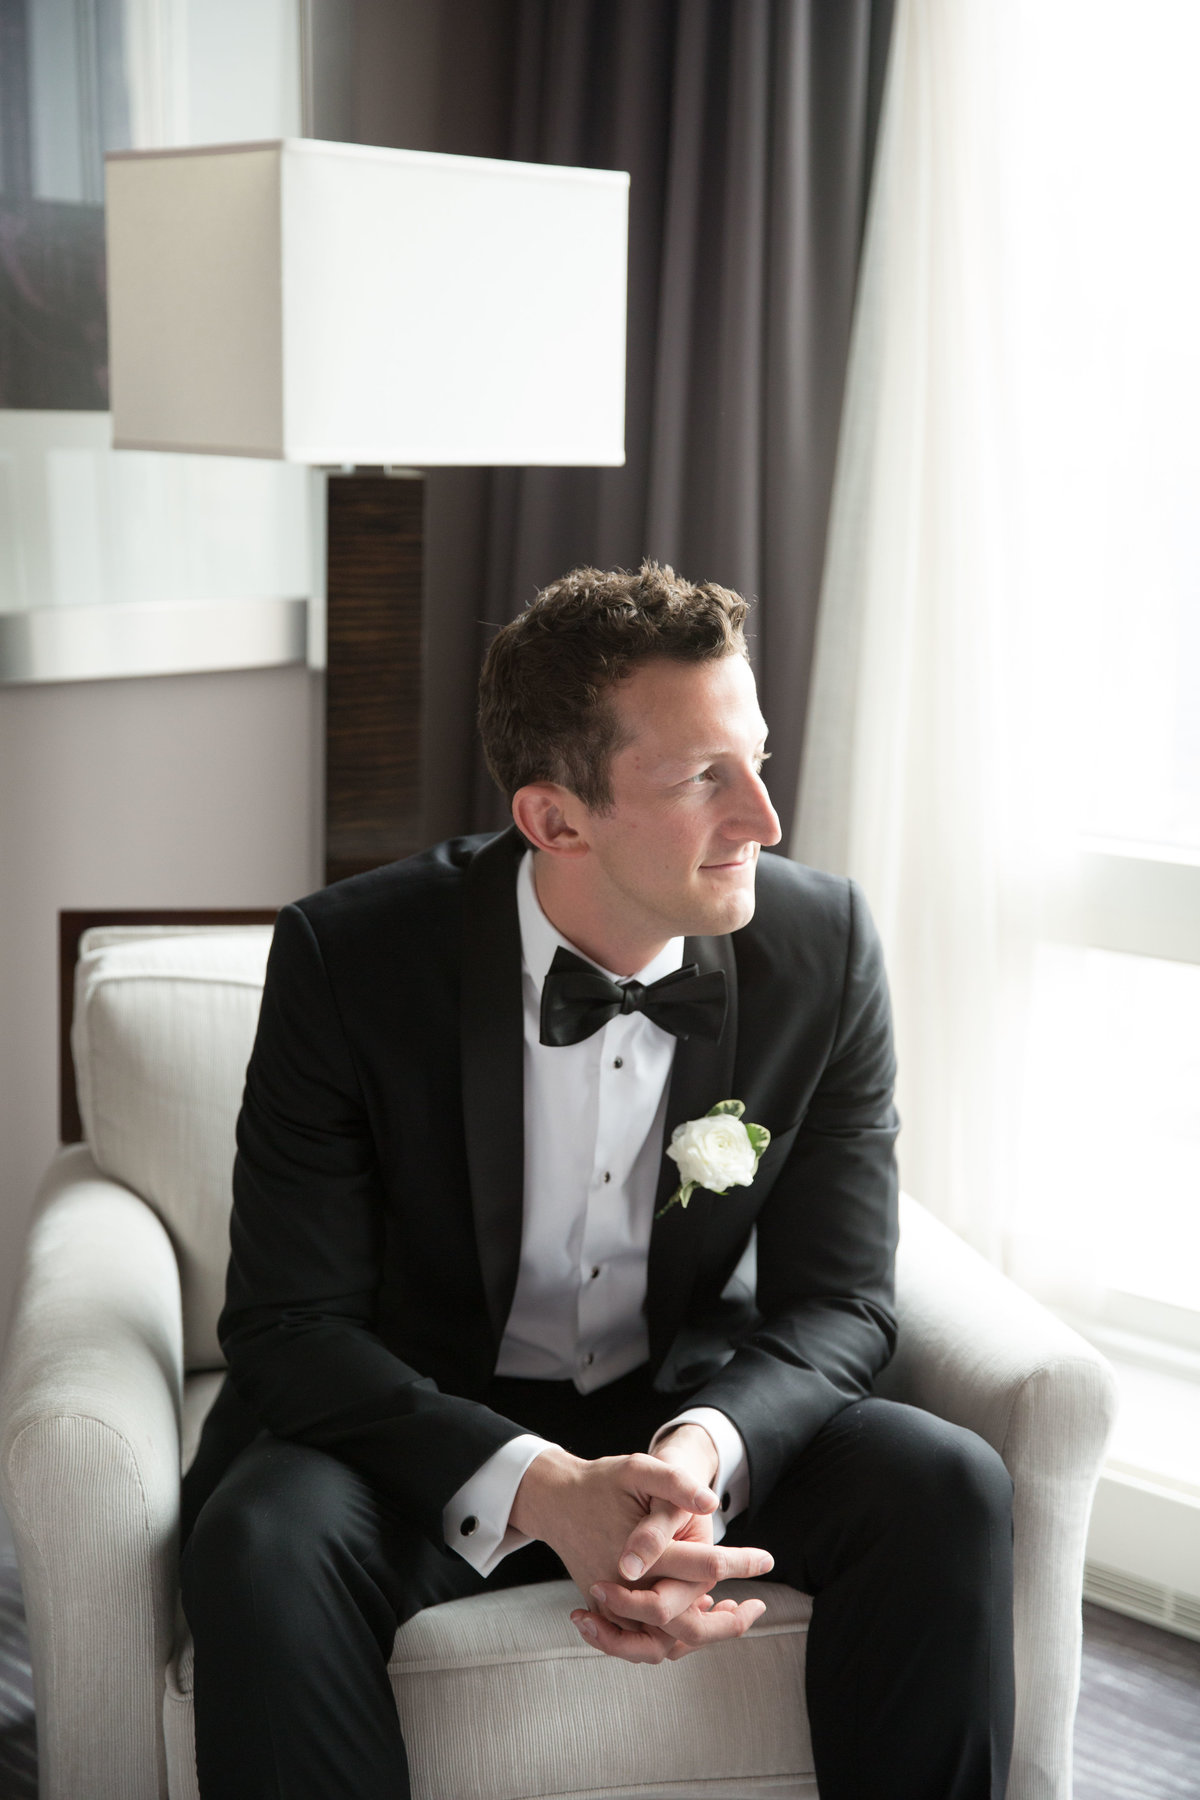 Nicole and Paul Wedding - Natalie Probst Photography 144